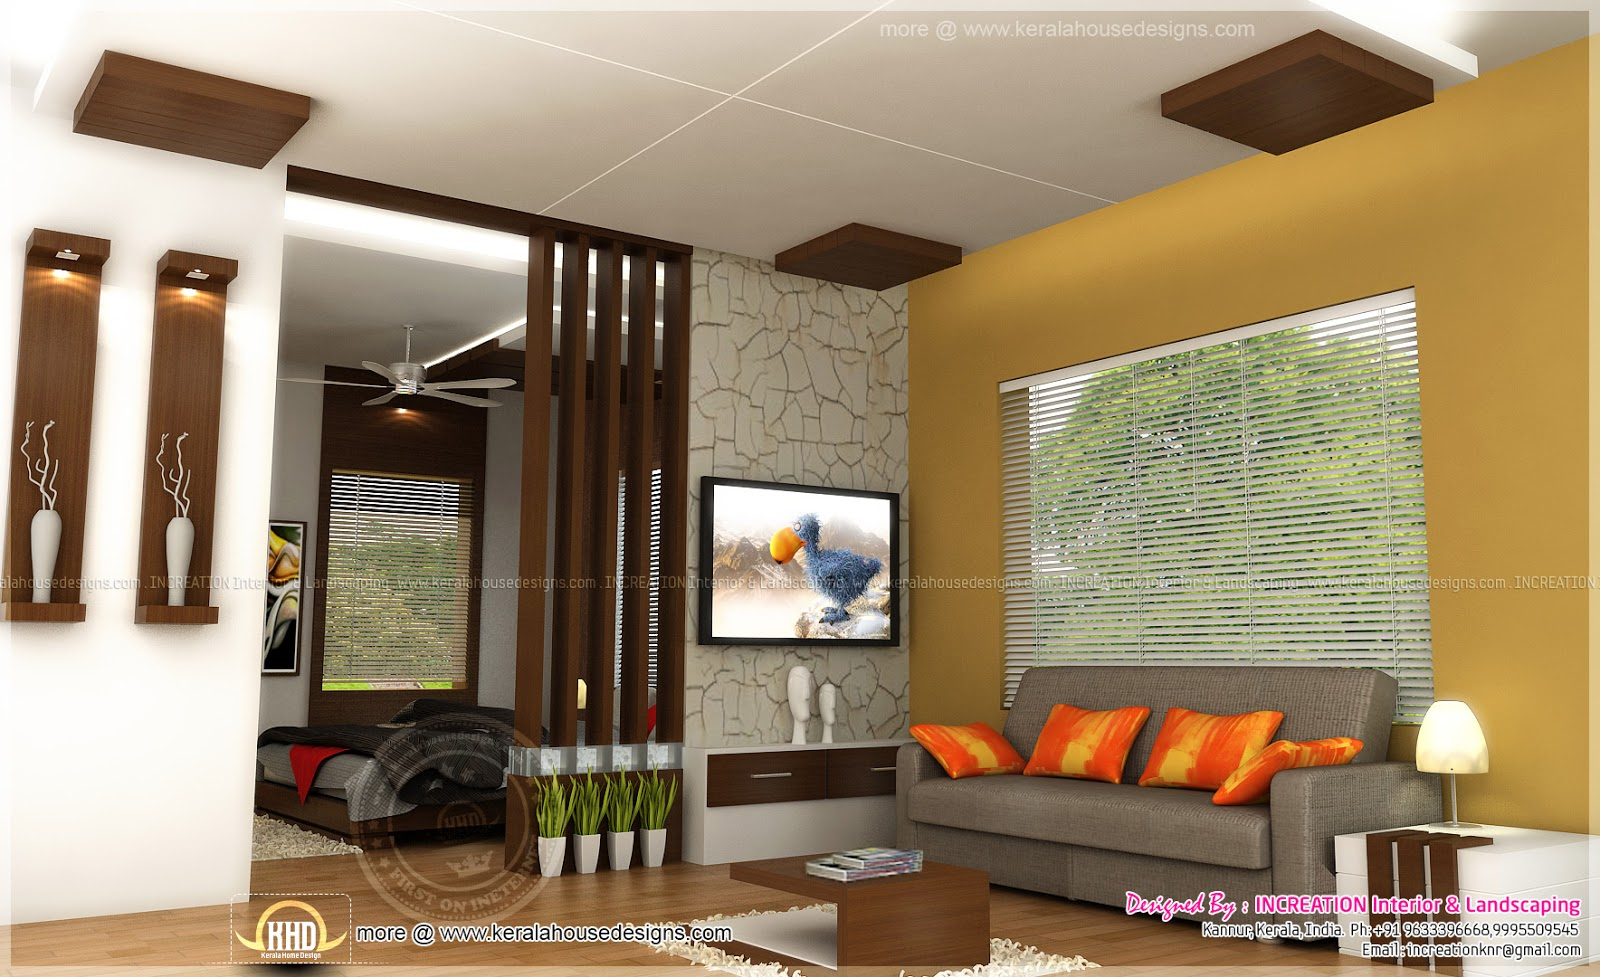 Interior designs from kannur kerala home kerala plans for New model house interior design